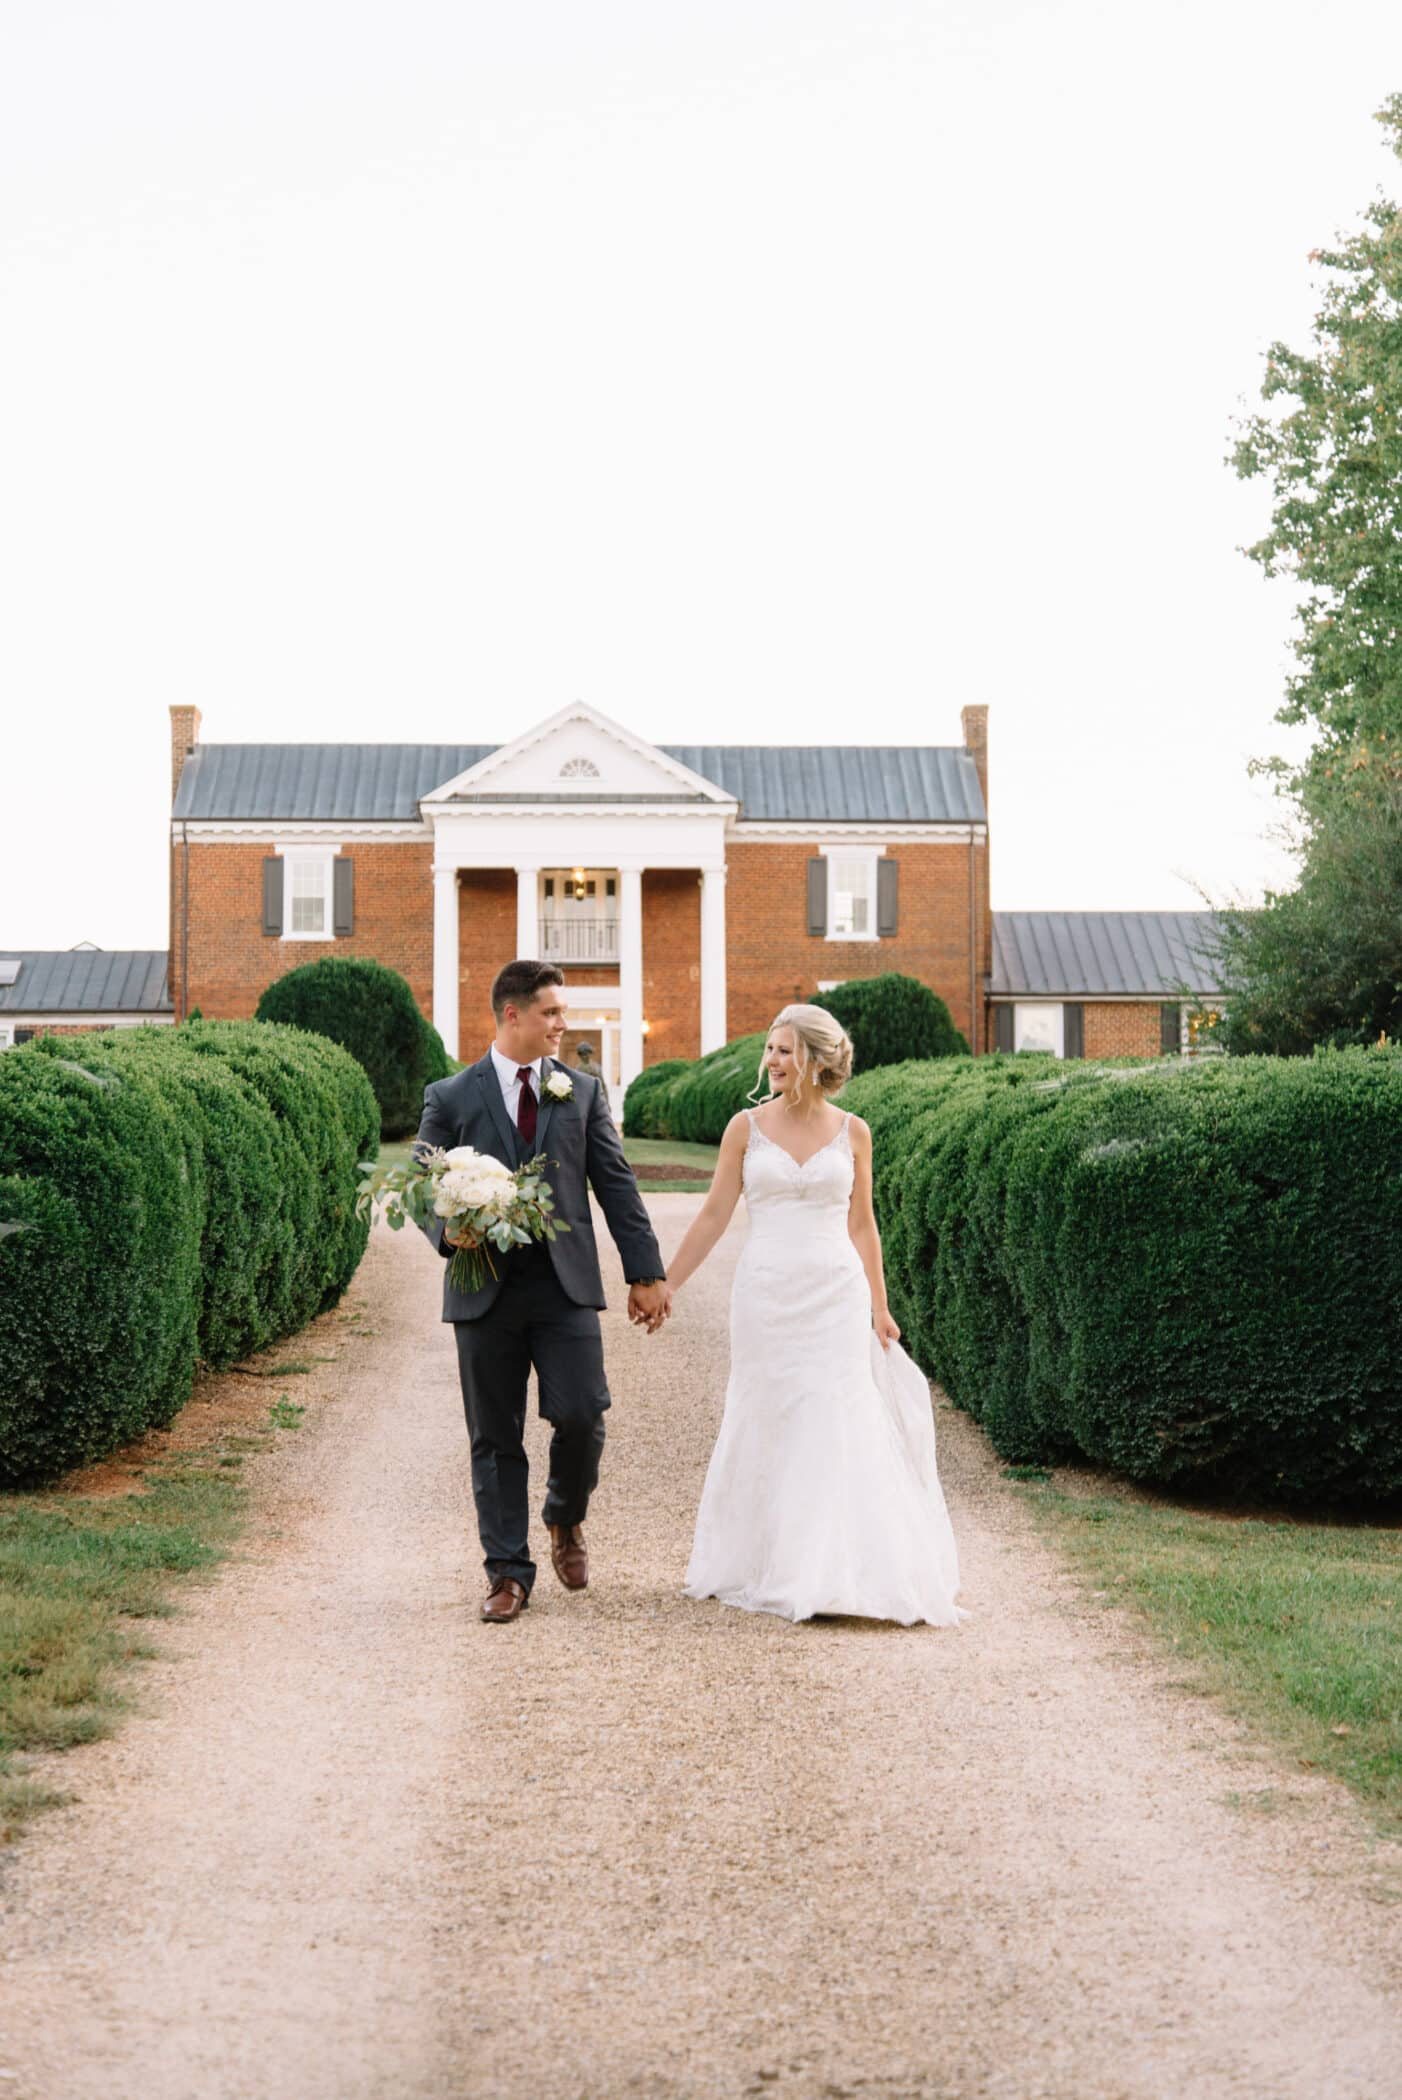 Selecting Your Virginia Wedding Venue | Entwined Events | Venue: West Manor Estate in Forest, VA | Photo Credit: Nicole Colwell Photography